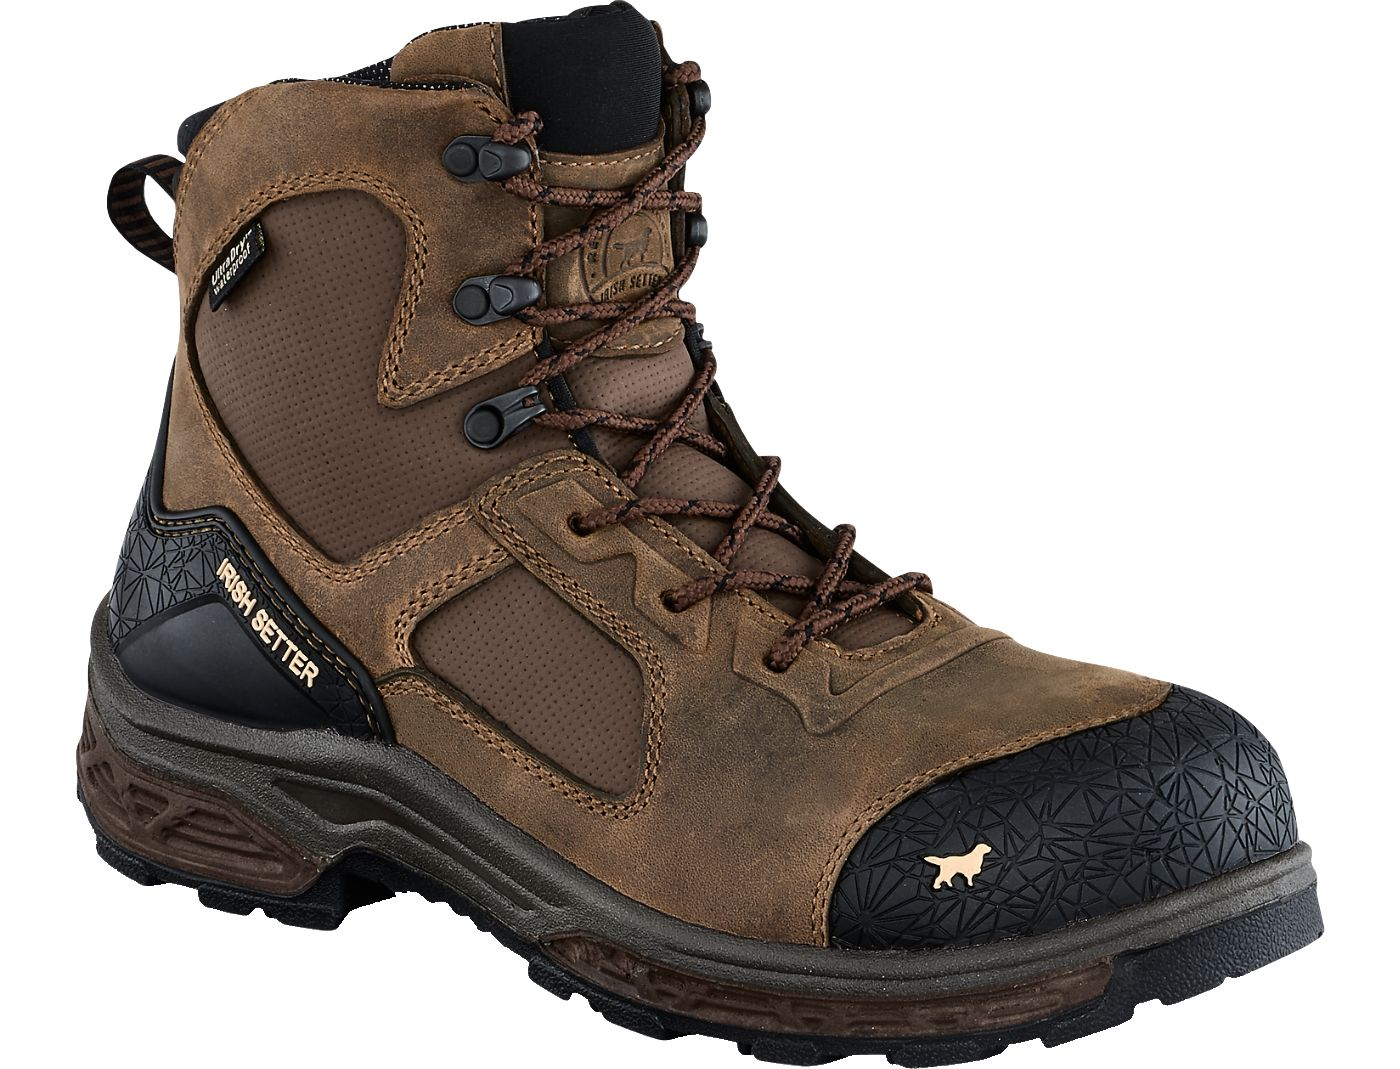 Irish Setter Men's Kasota 6'' Side Zip Waterproof Composite Toe Work Boots